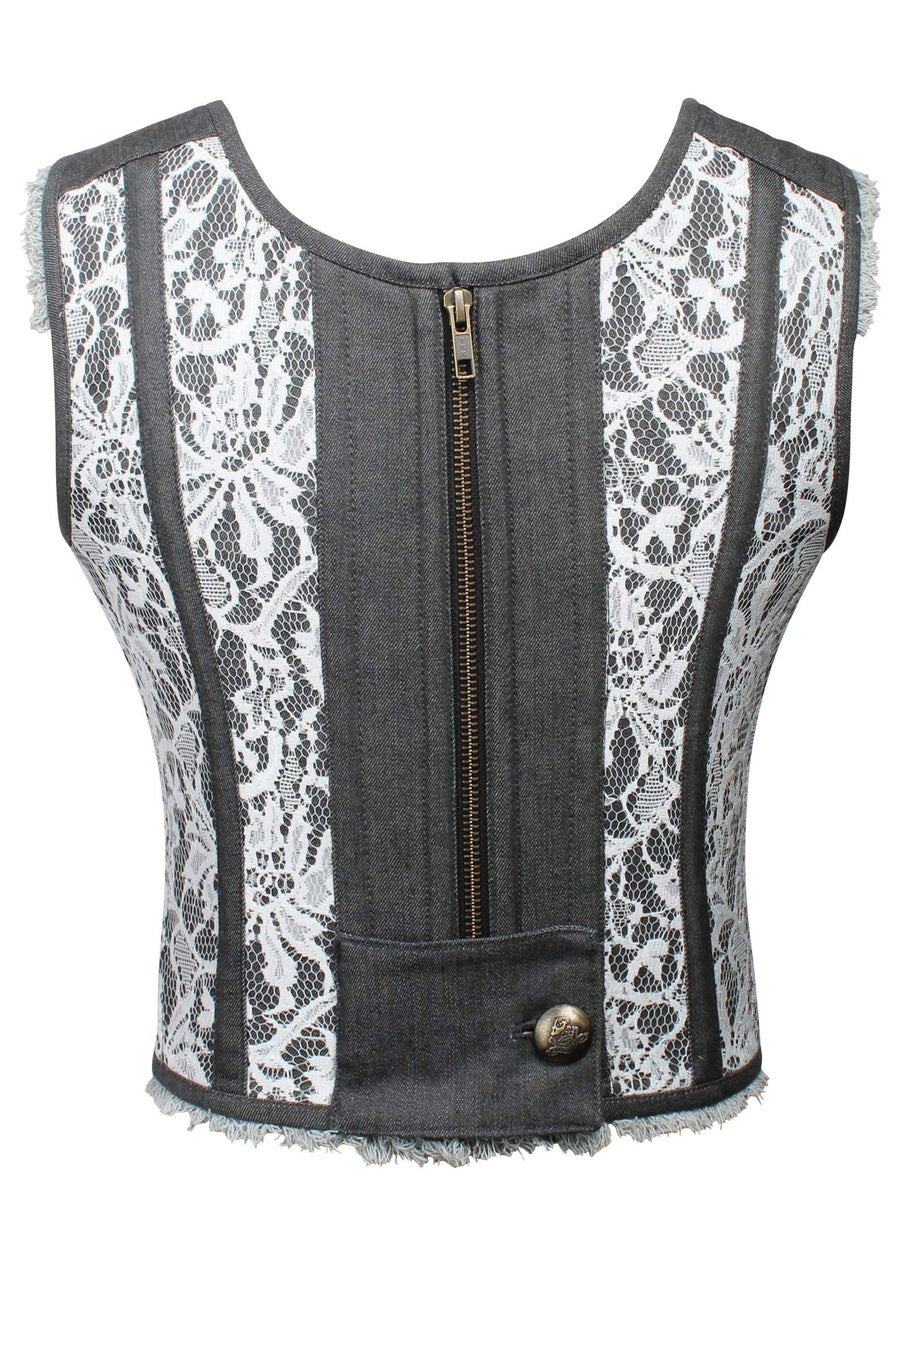 Net Overlay and Denim Bodice Corset with Zip